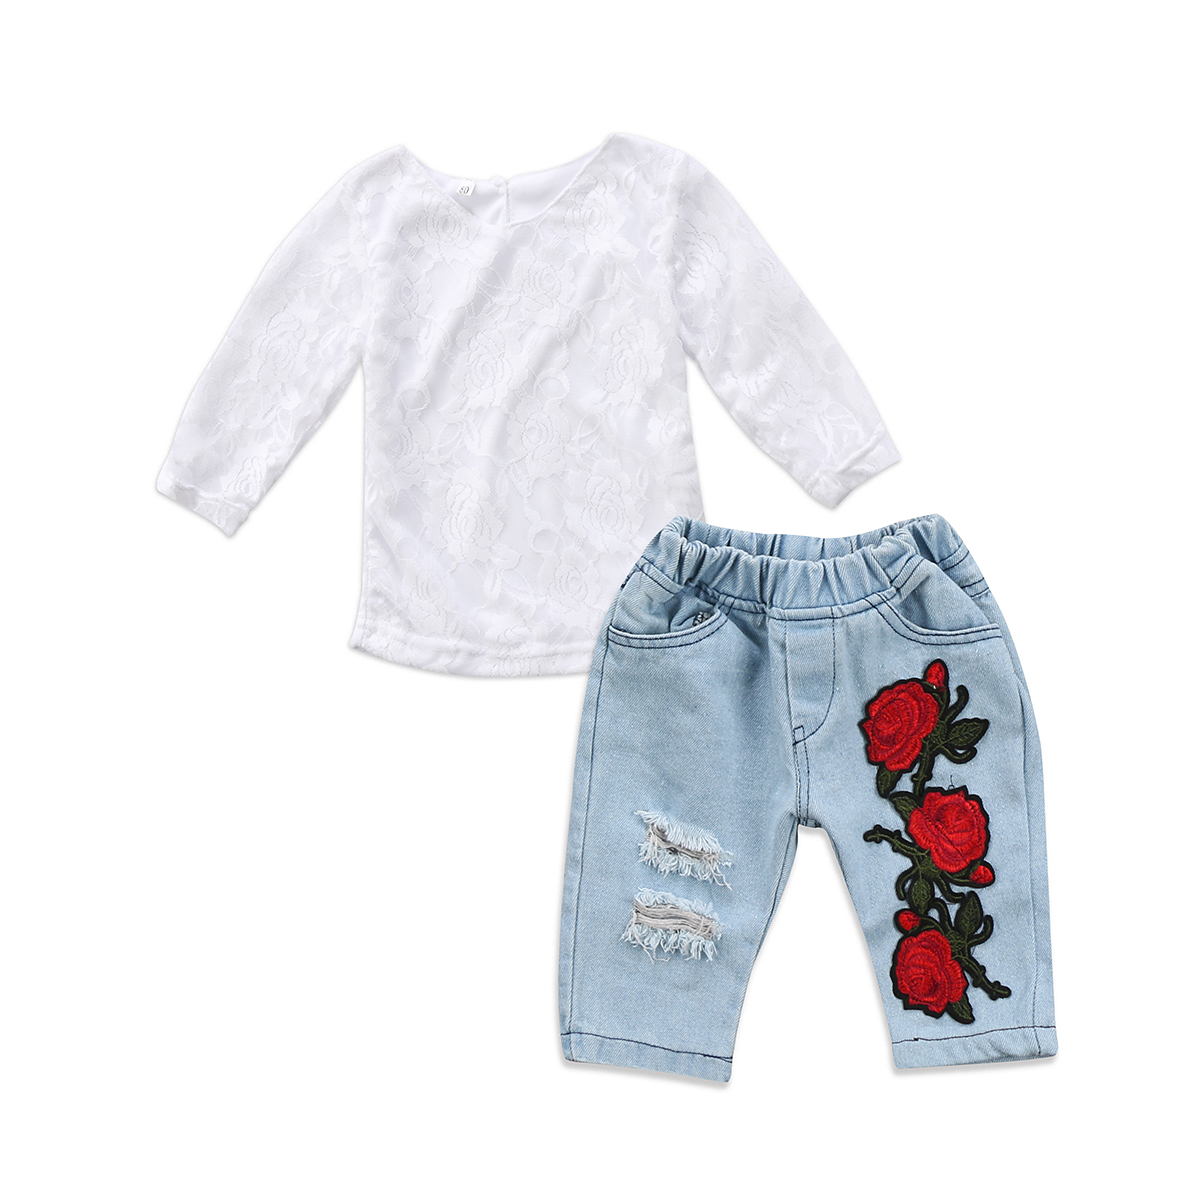 Girls Lace Flower Outfits Newborn Kids Baby Girl White Lace Tops Shirts 3D Flower Denim Pants Ripped Jeans Hot Kids Clothes Set girl off shoulder tops short sleeve denim pants jeans headbands 3pcs outfits set clothing toddler girls kids clothes sets